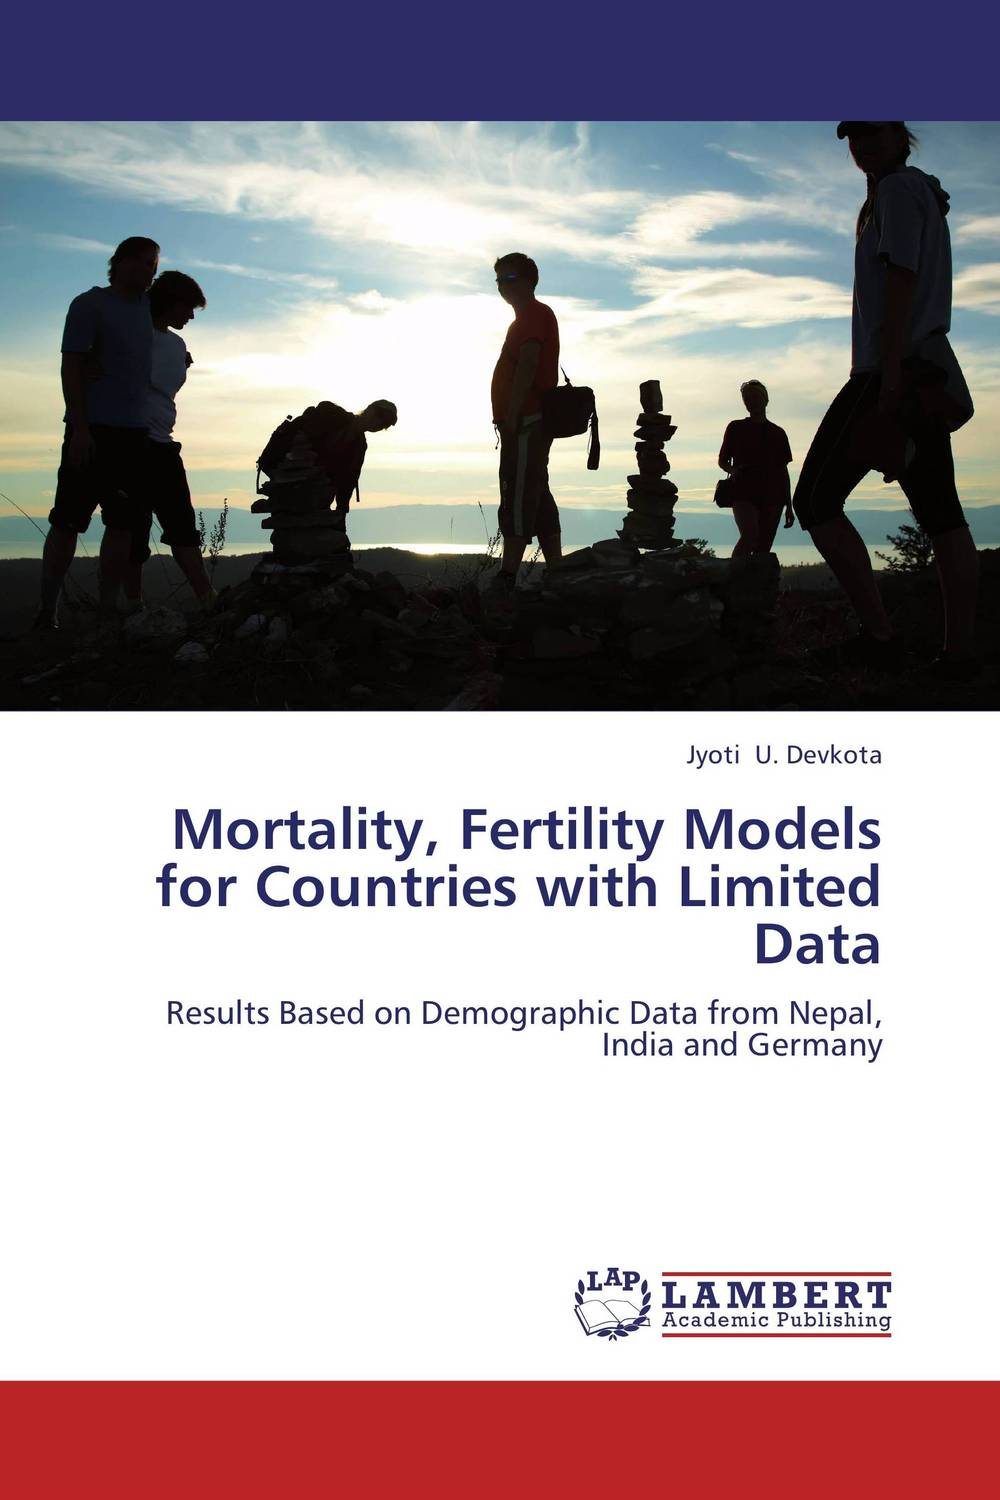 Mortality, Fertility Models for Countries with Limited Data keith holdaway harness oil and gas big data with analytics optimize exploration and production with data driven models